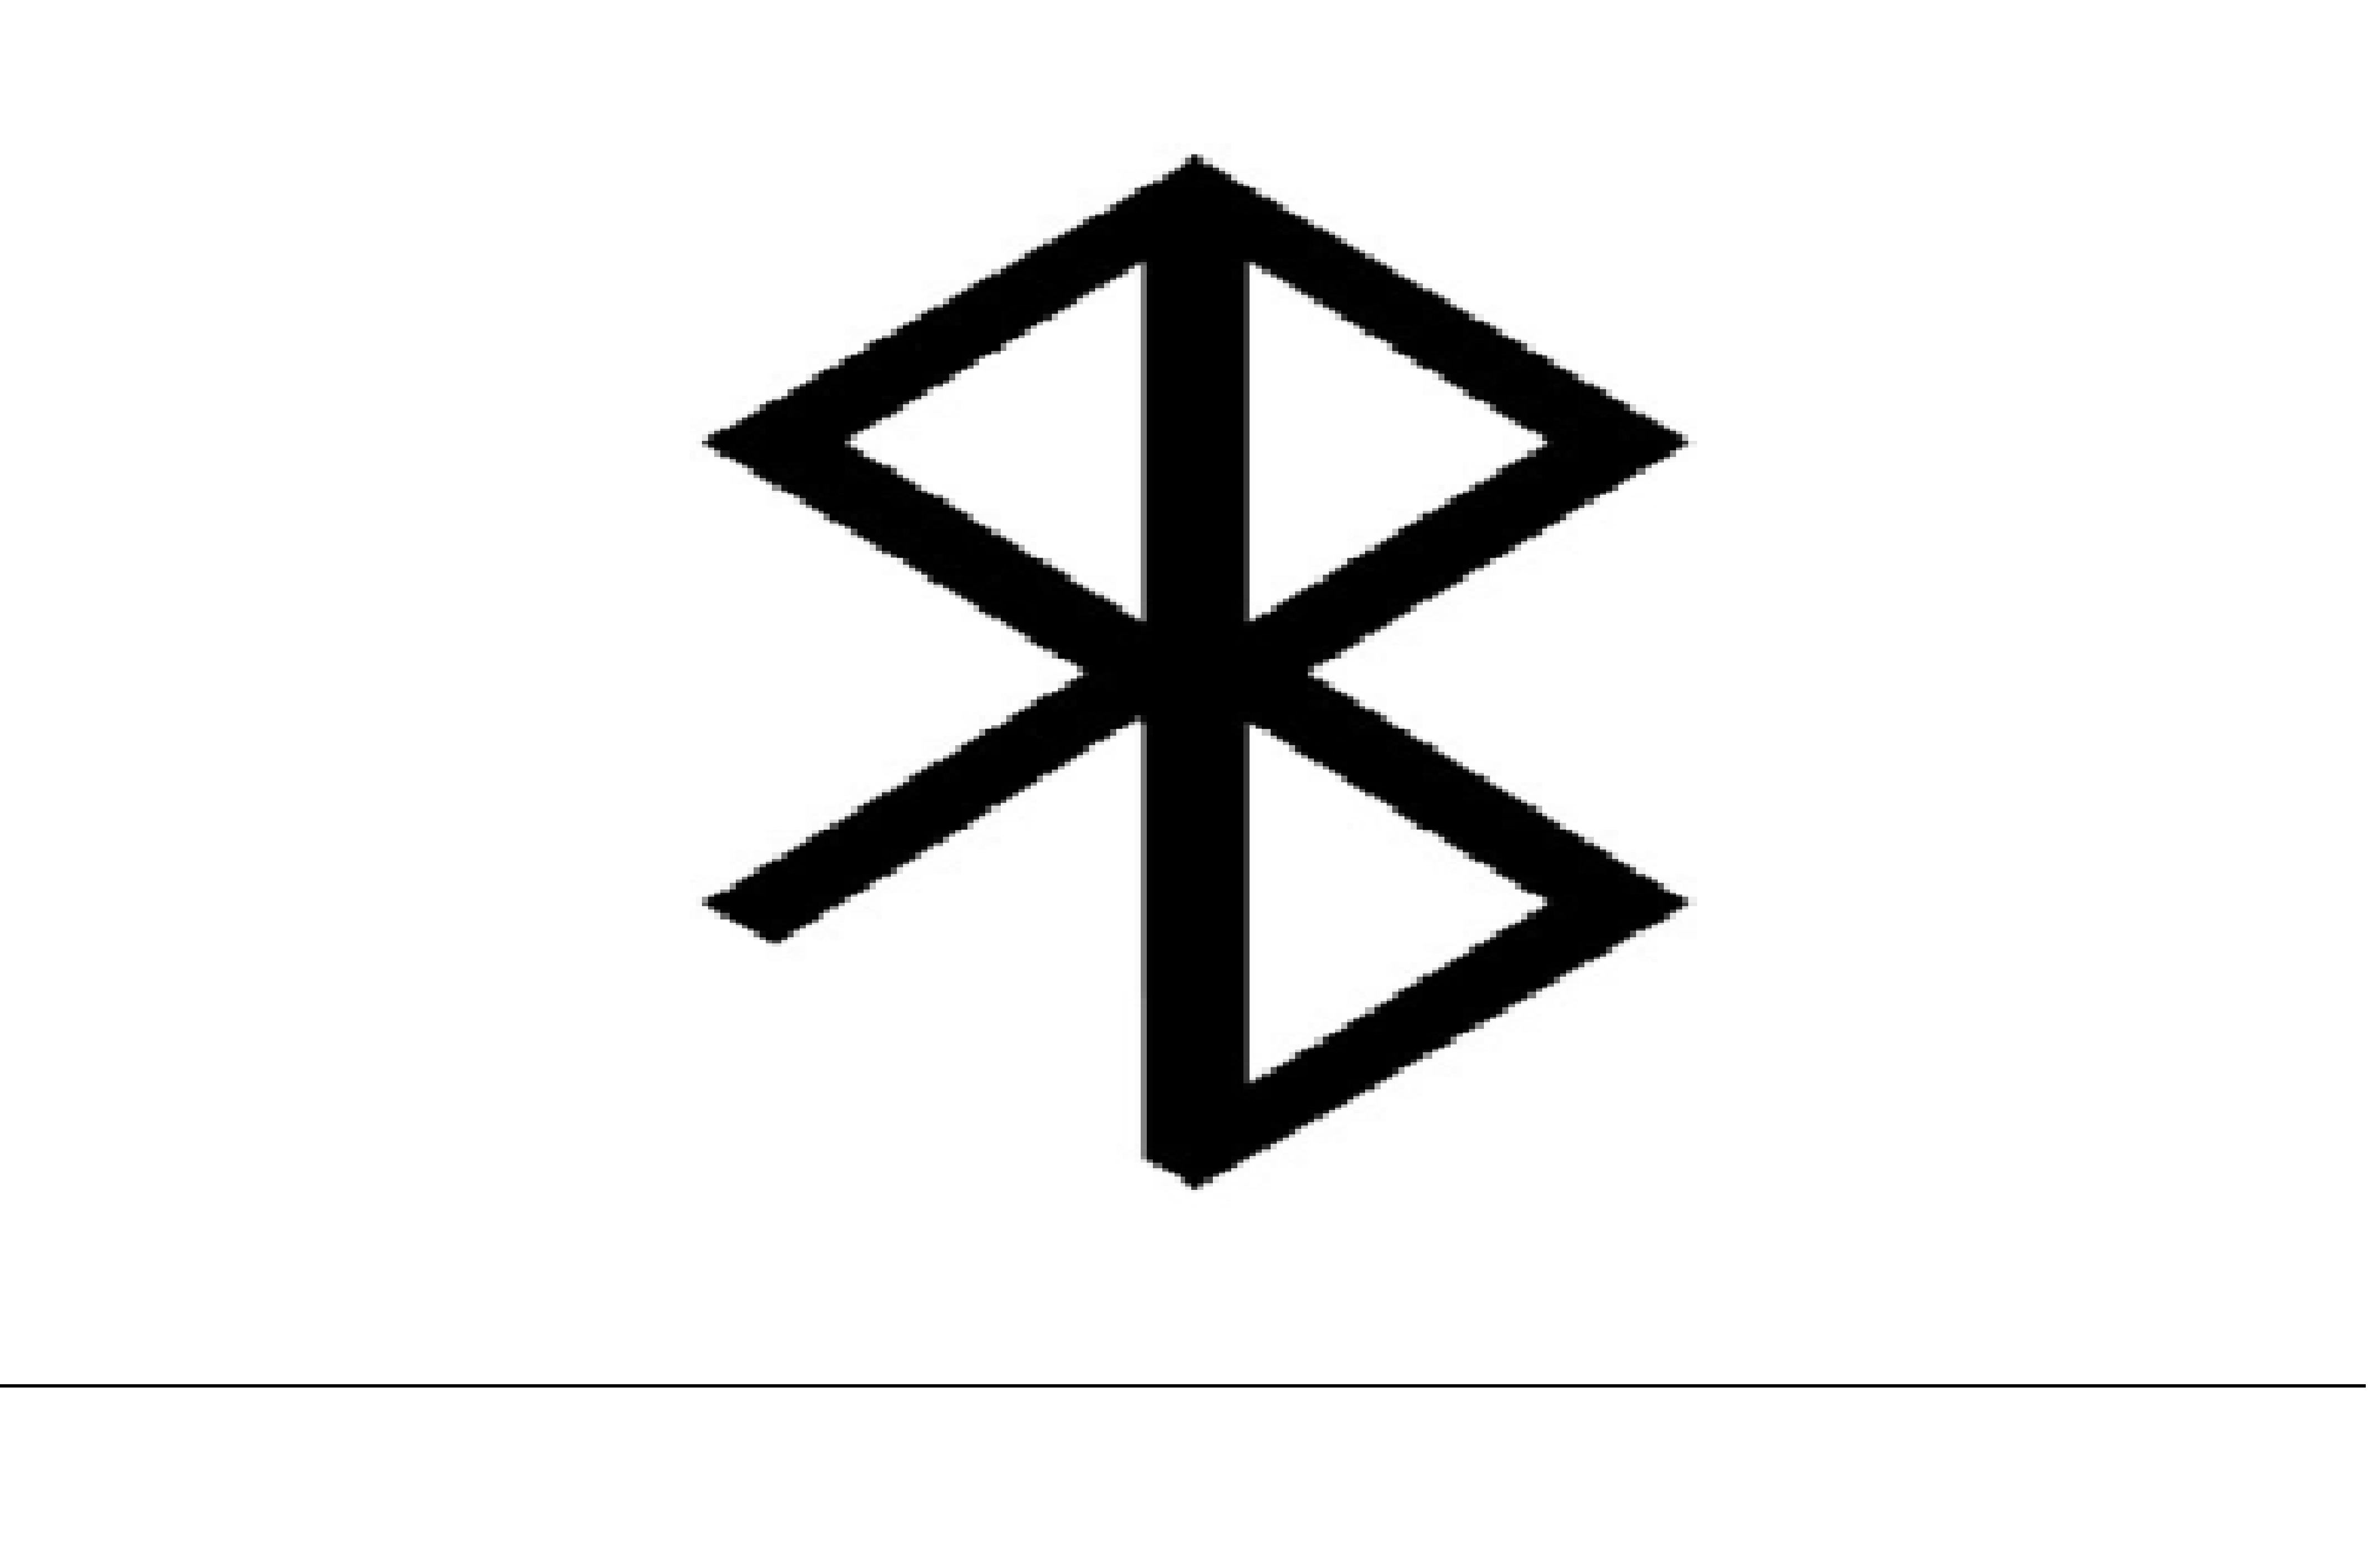 Backwards r symbol gallery symbol and sign ideas backwards r symbol gallery symbol and sign ideas possible next tattoo a rune based symbol meaning buycottarizona